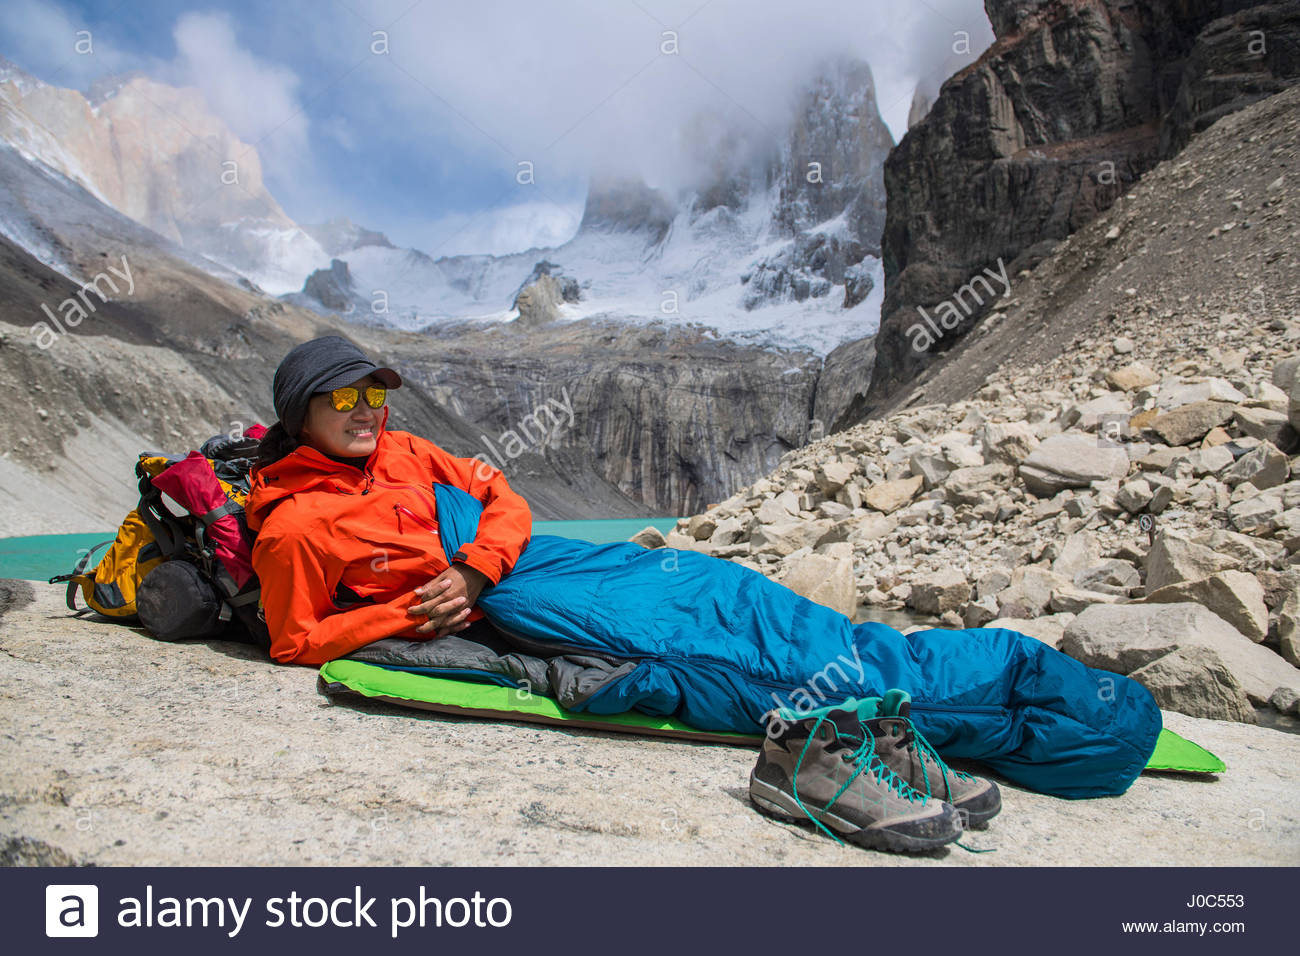 Female hiker camping out at Torres del Paine National Park, Patagonia, Chile - Stock Image